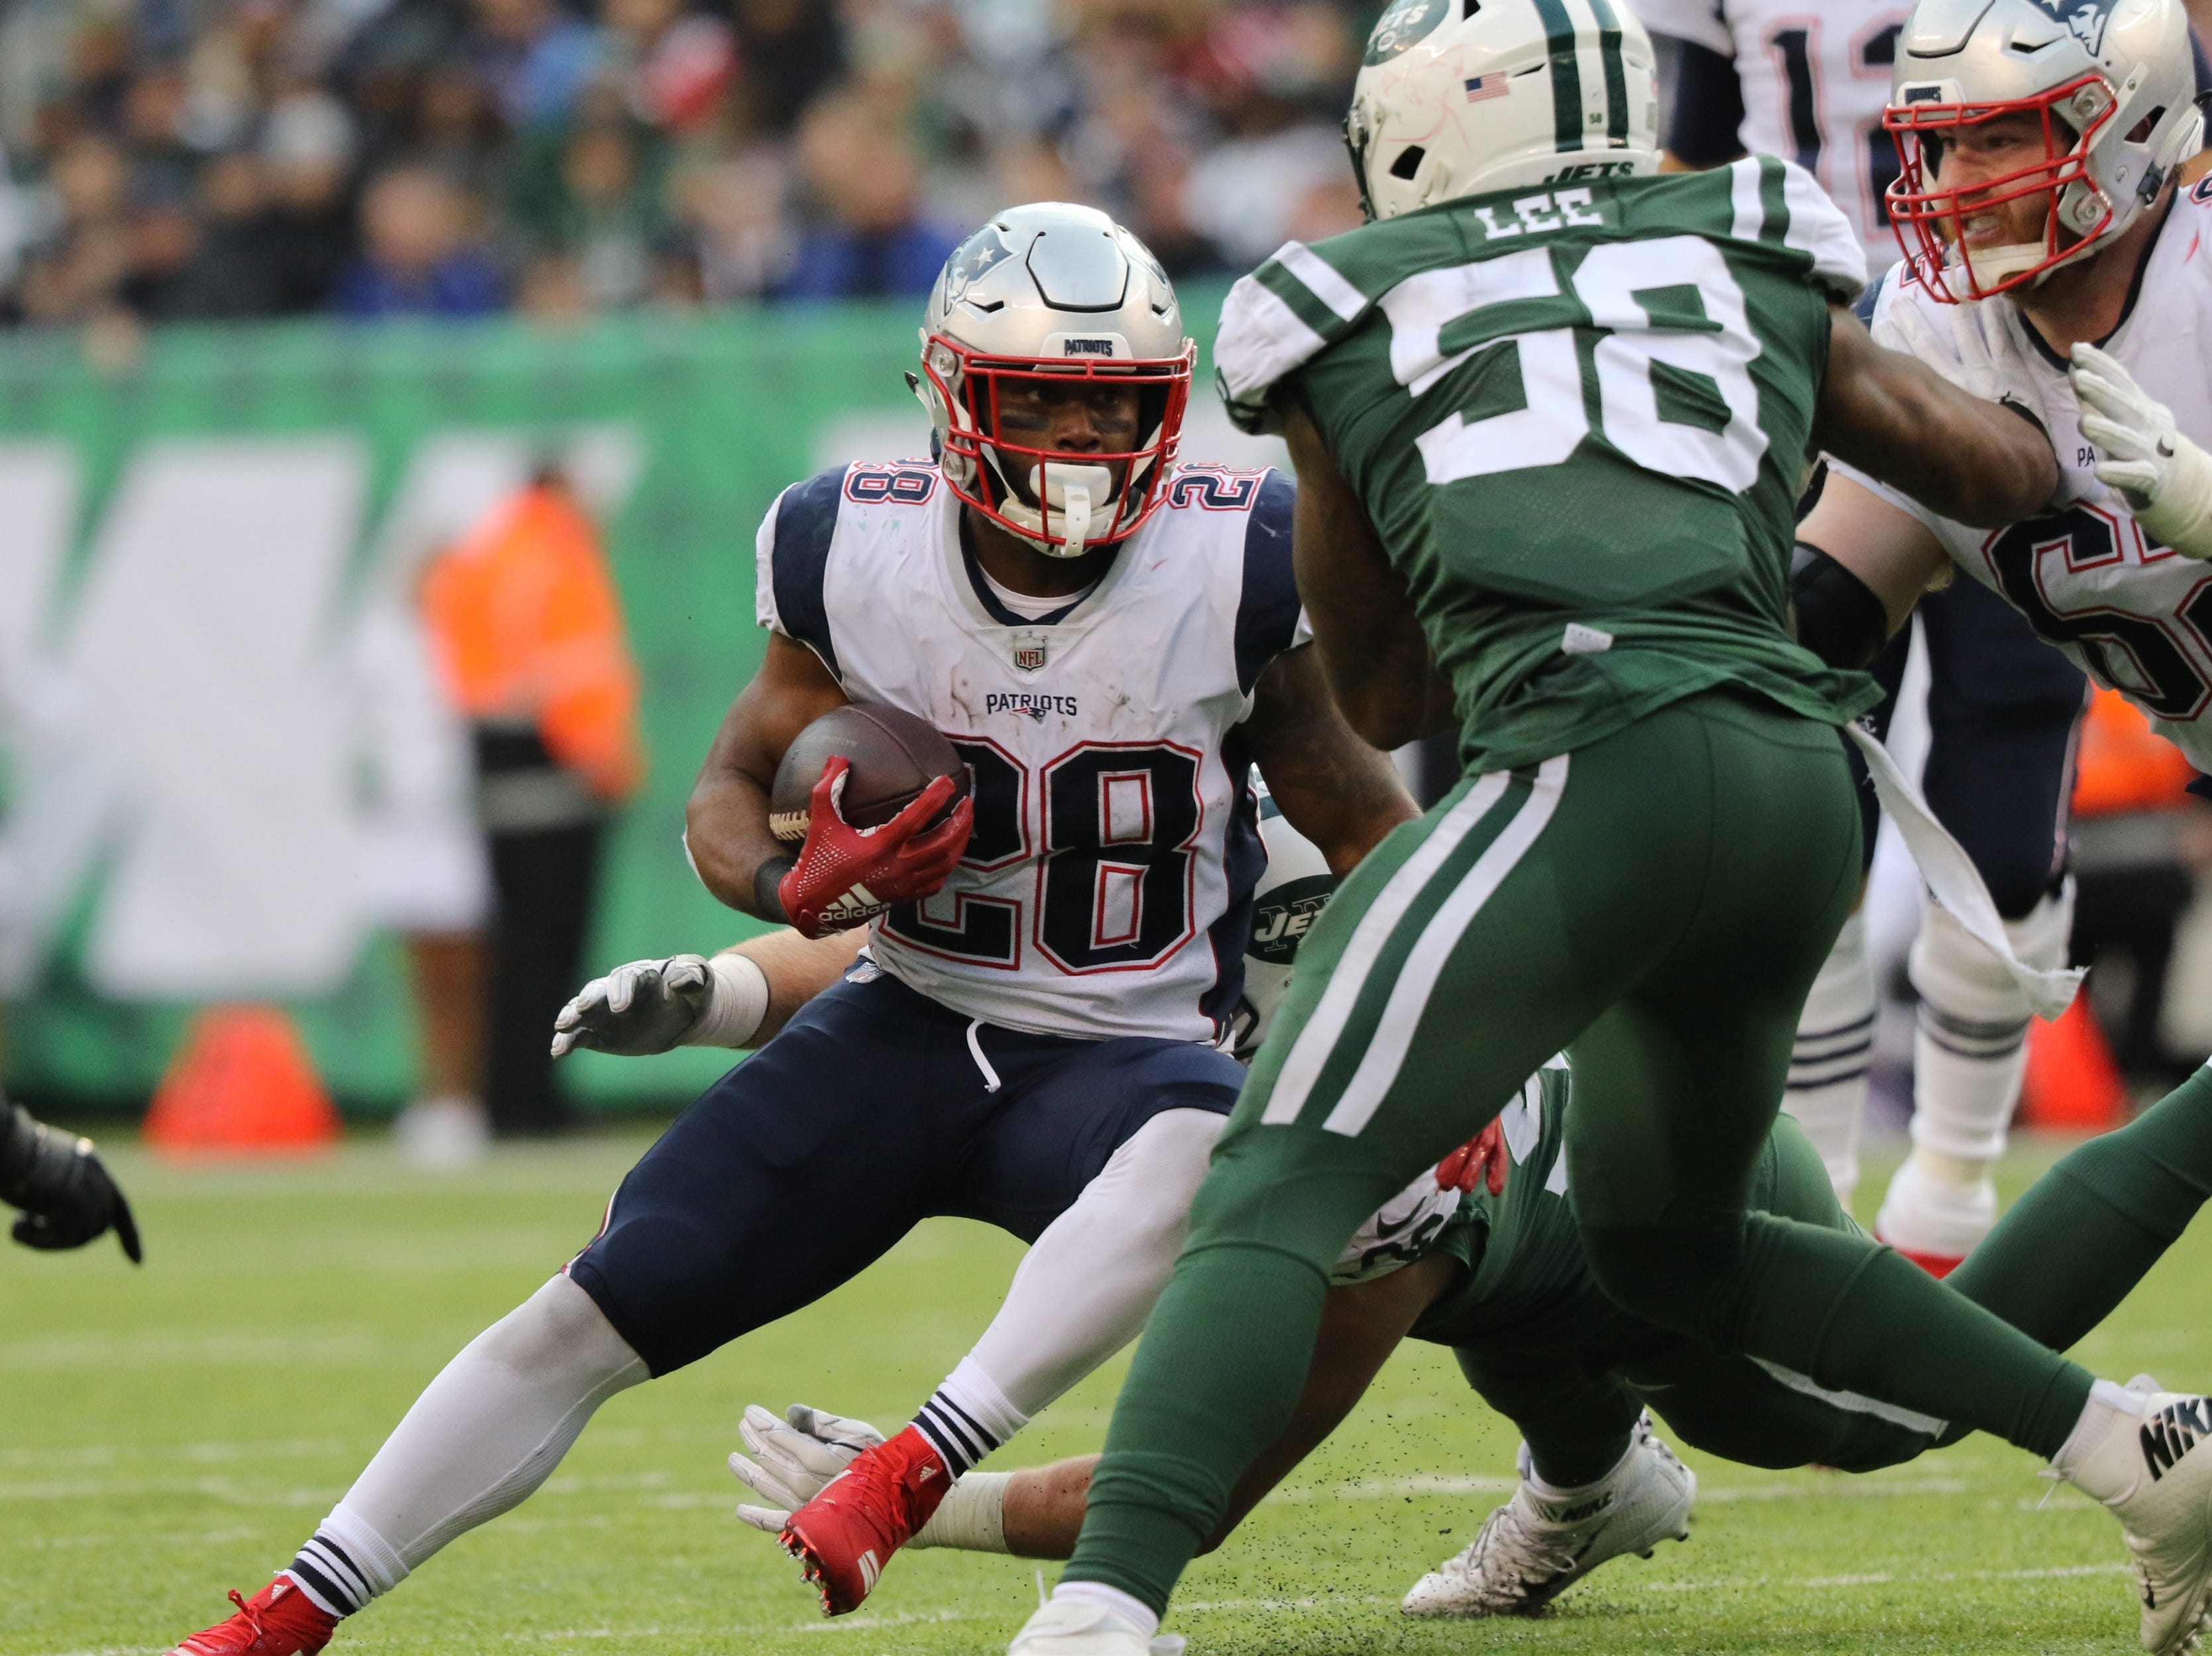 James White runs the ball for the Patriots during the second half. Sunday, November 25, 2018